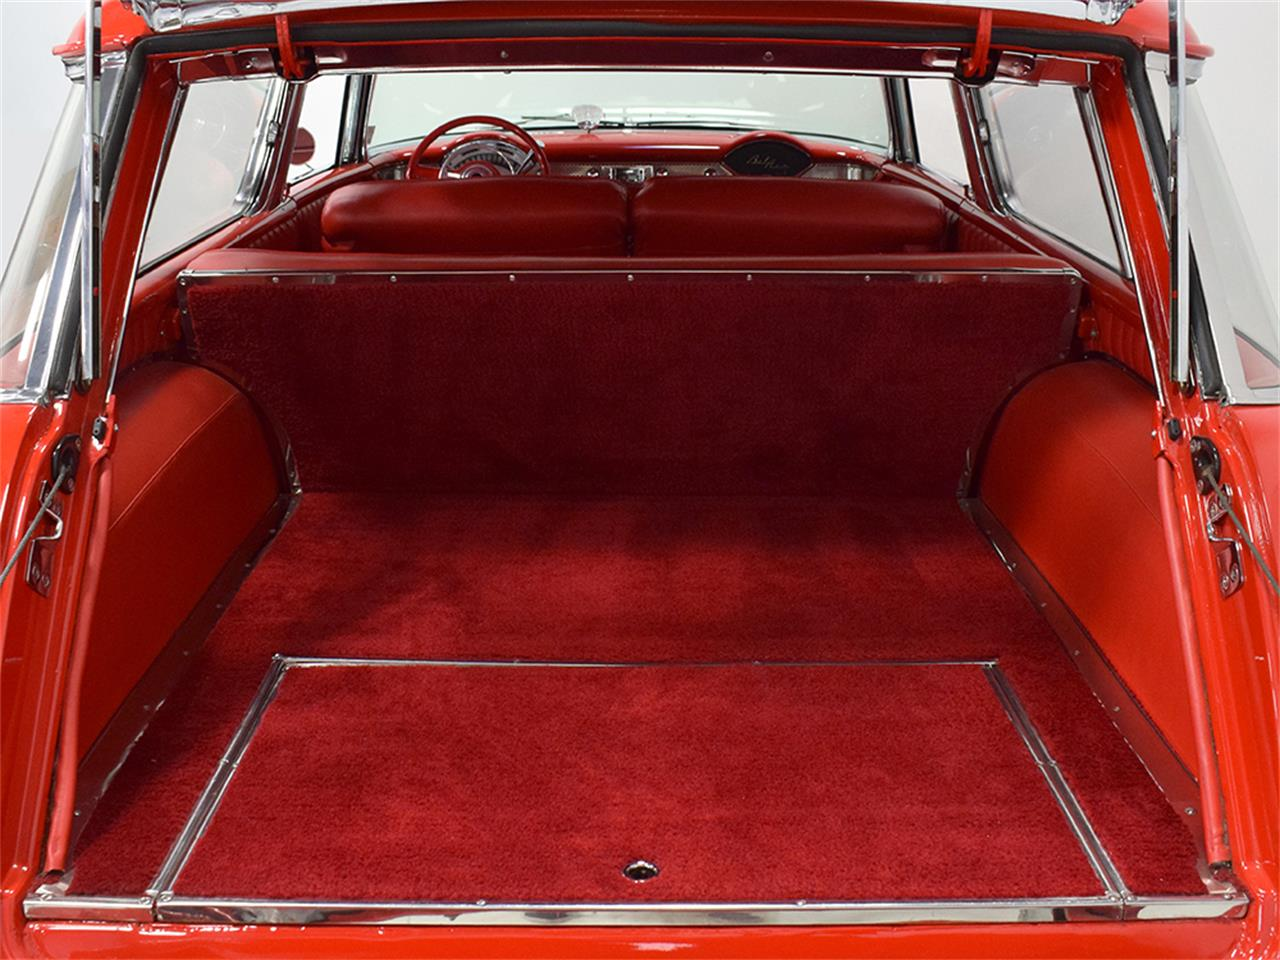 Large Picture of Classic 1955 Chevrolet Nomad located in Ohio - $69,900.00 Offered by Harwood Motors, LTD. - O8YP